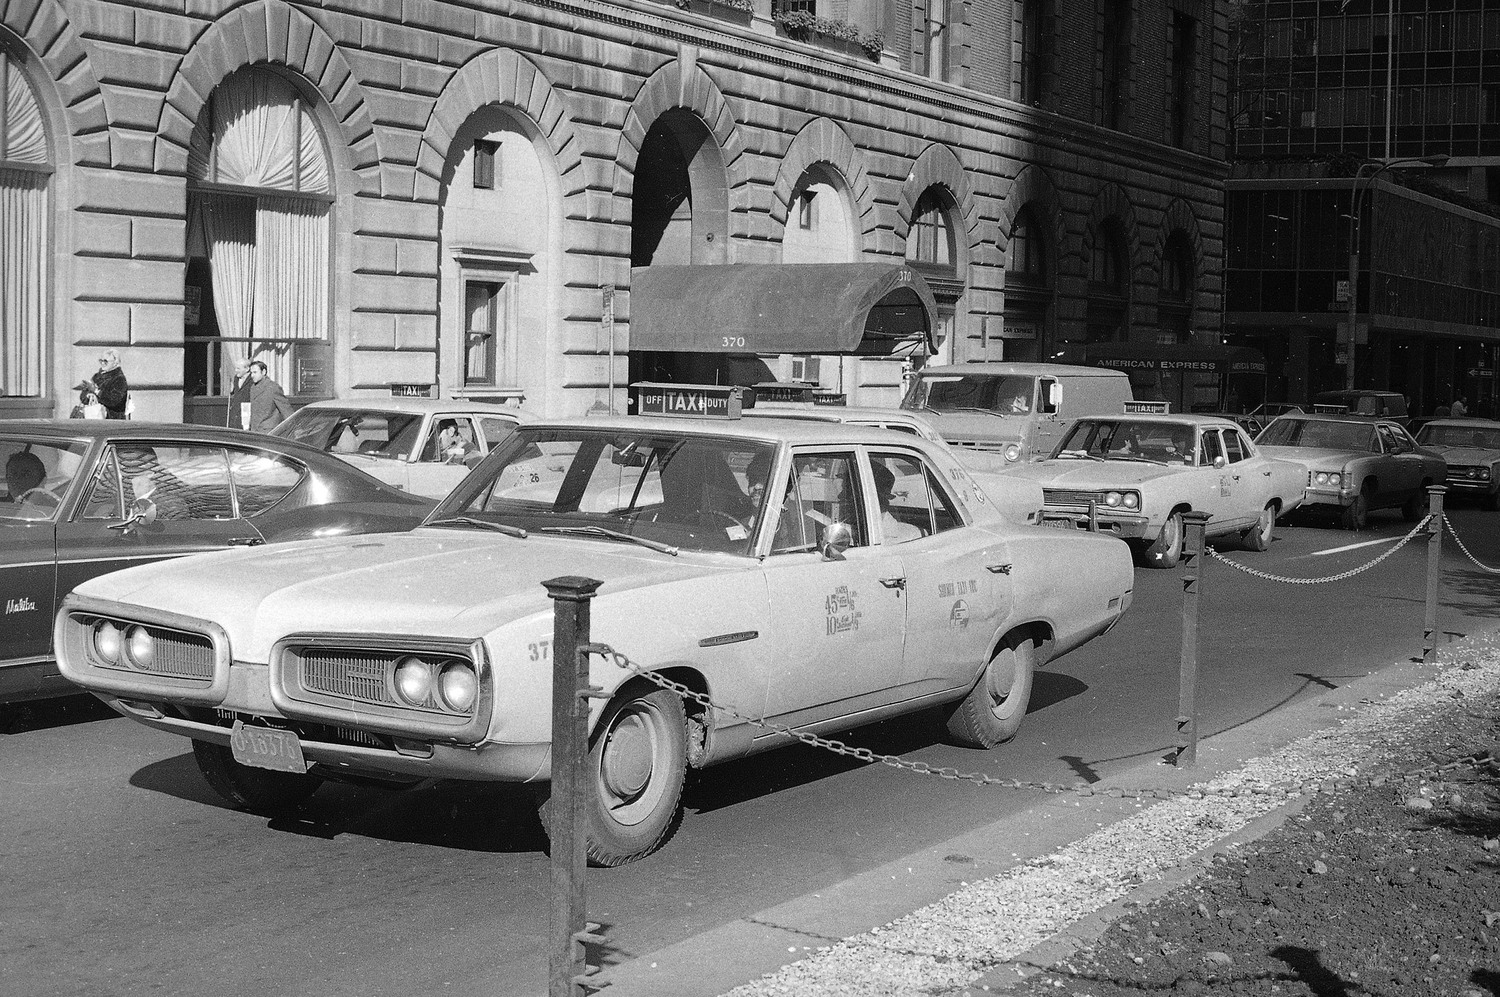 Taxis are seen in mid-Manhattan, New York, Nov. 17, 1970.